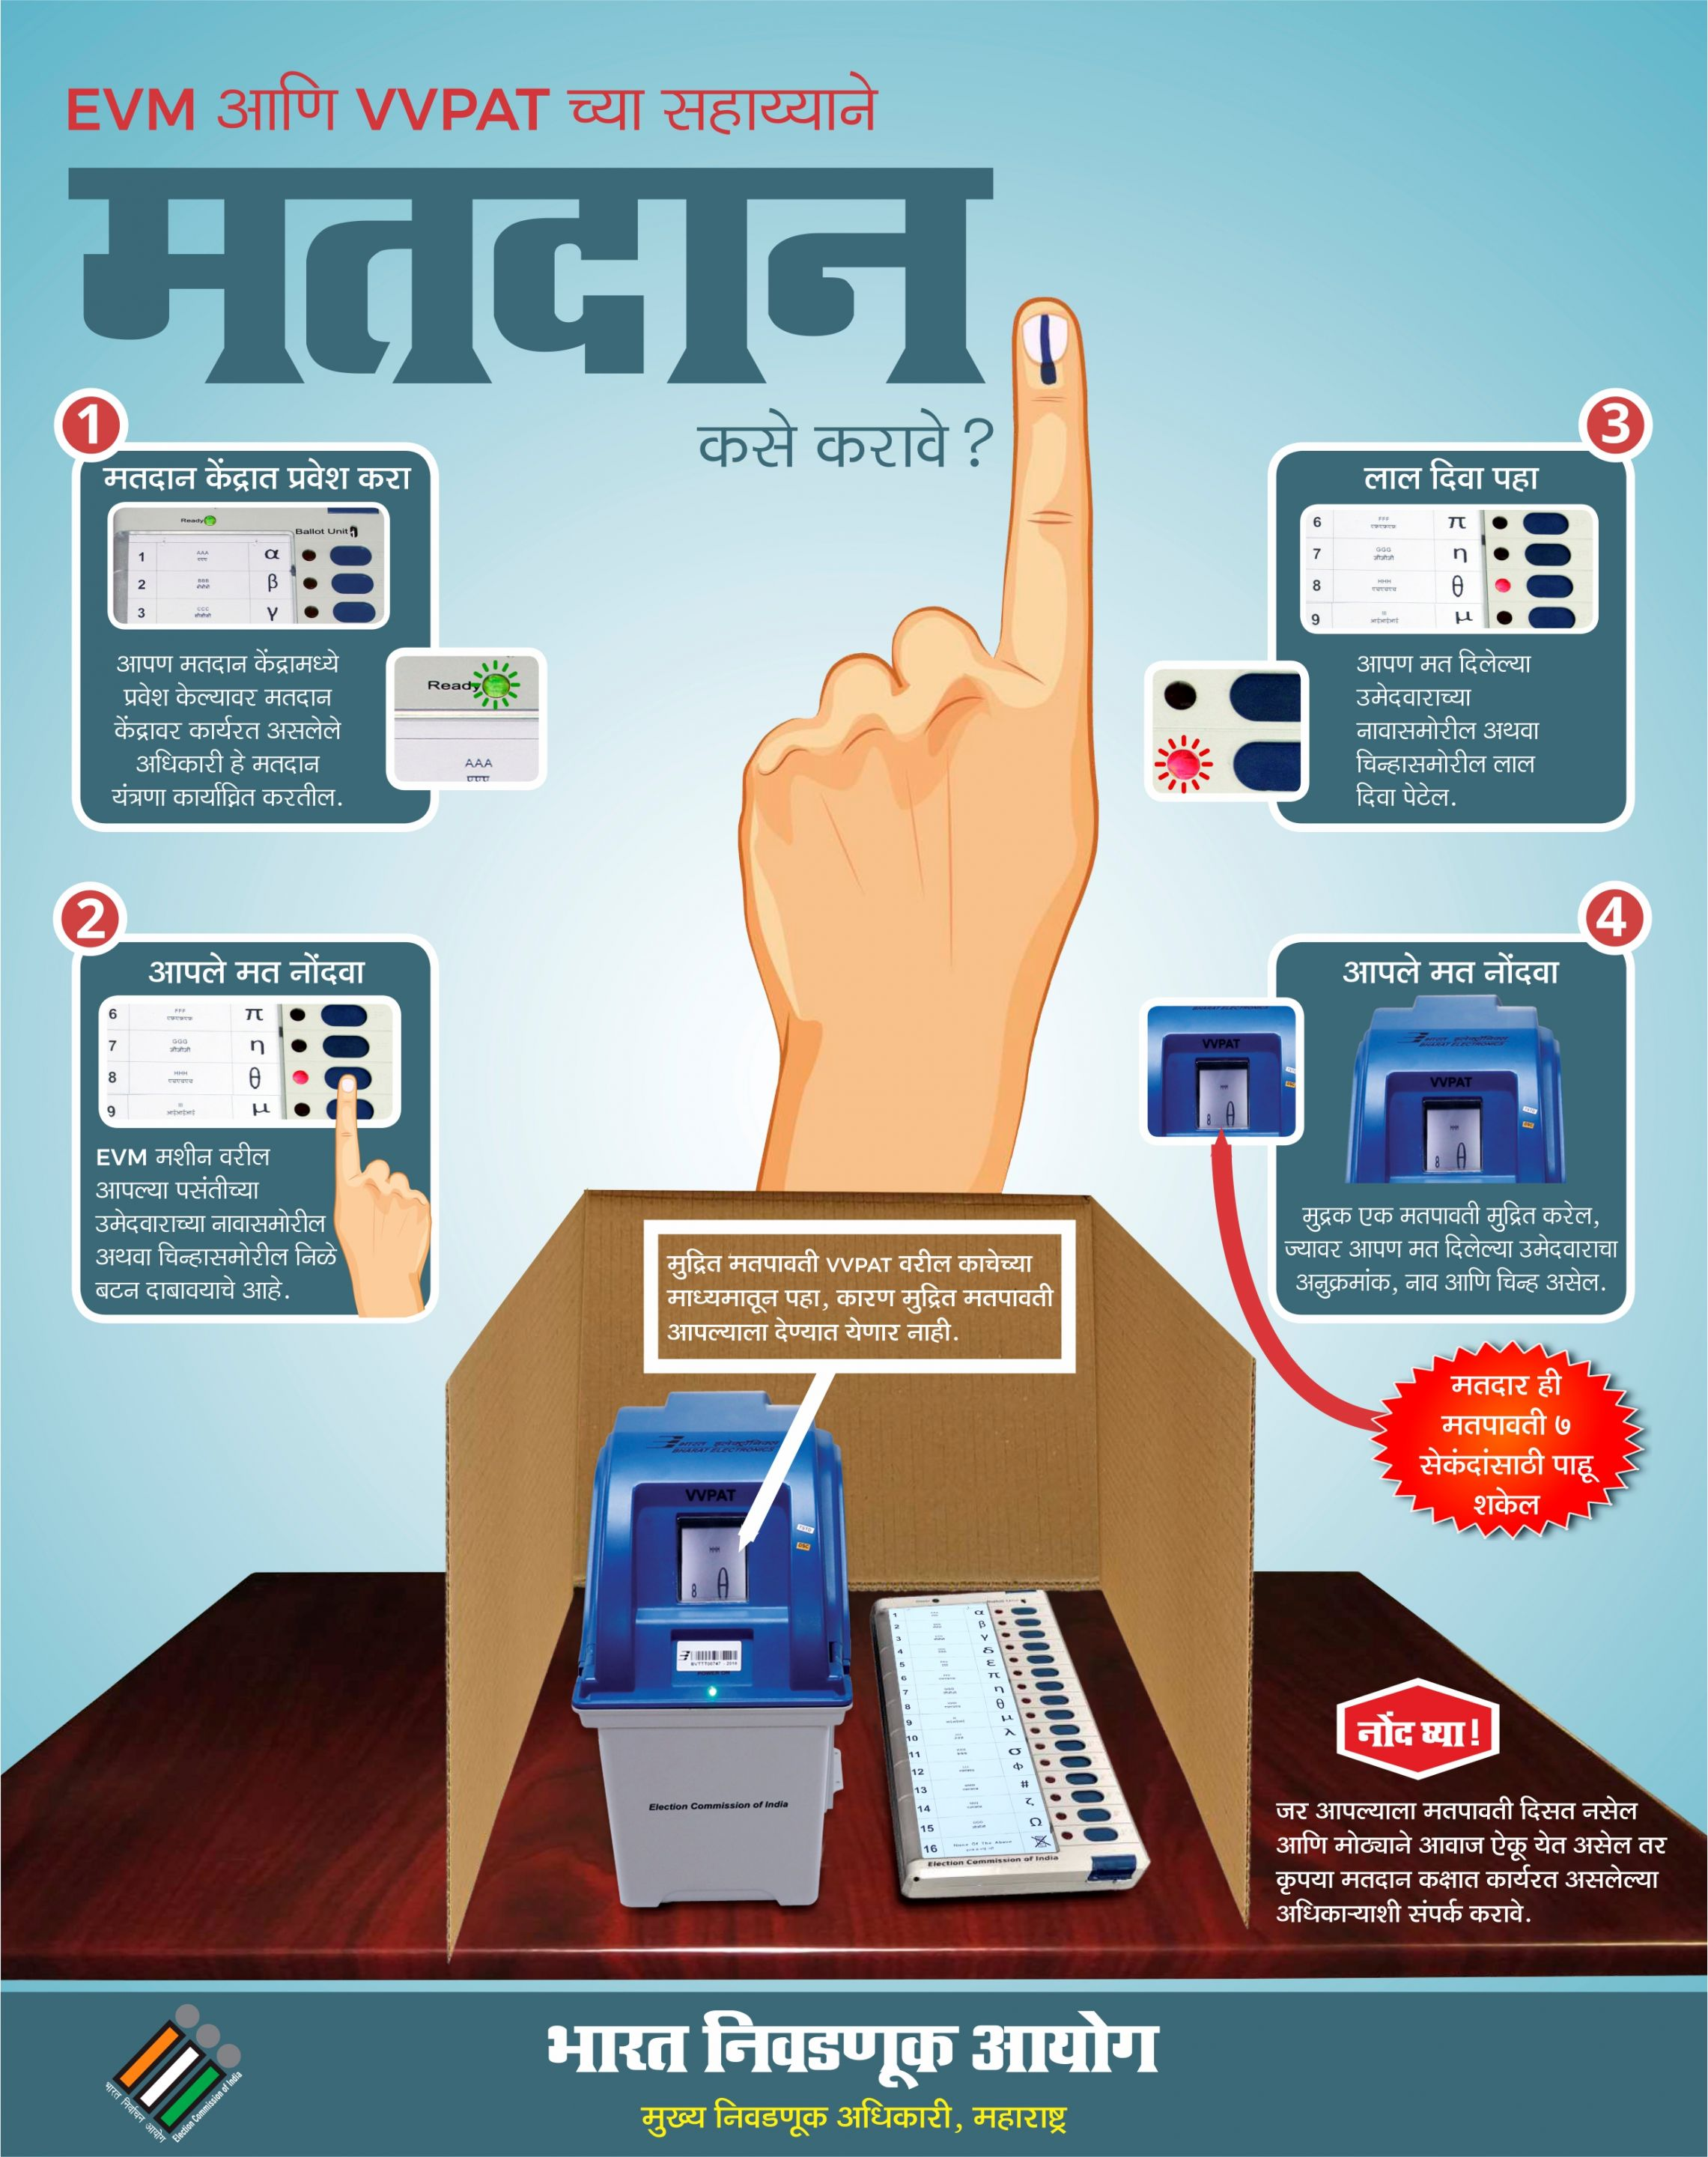 How to cast your vote using EVM VVPAT.jpg